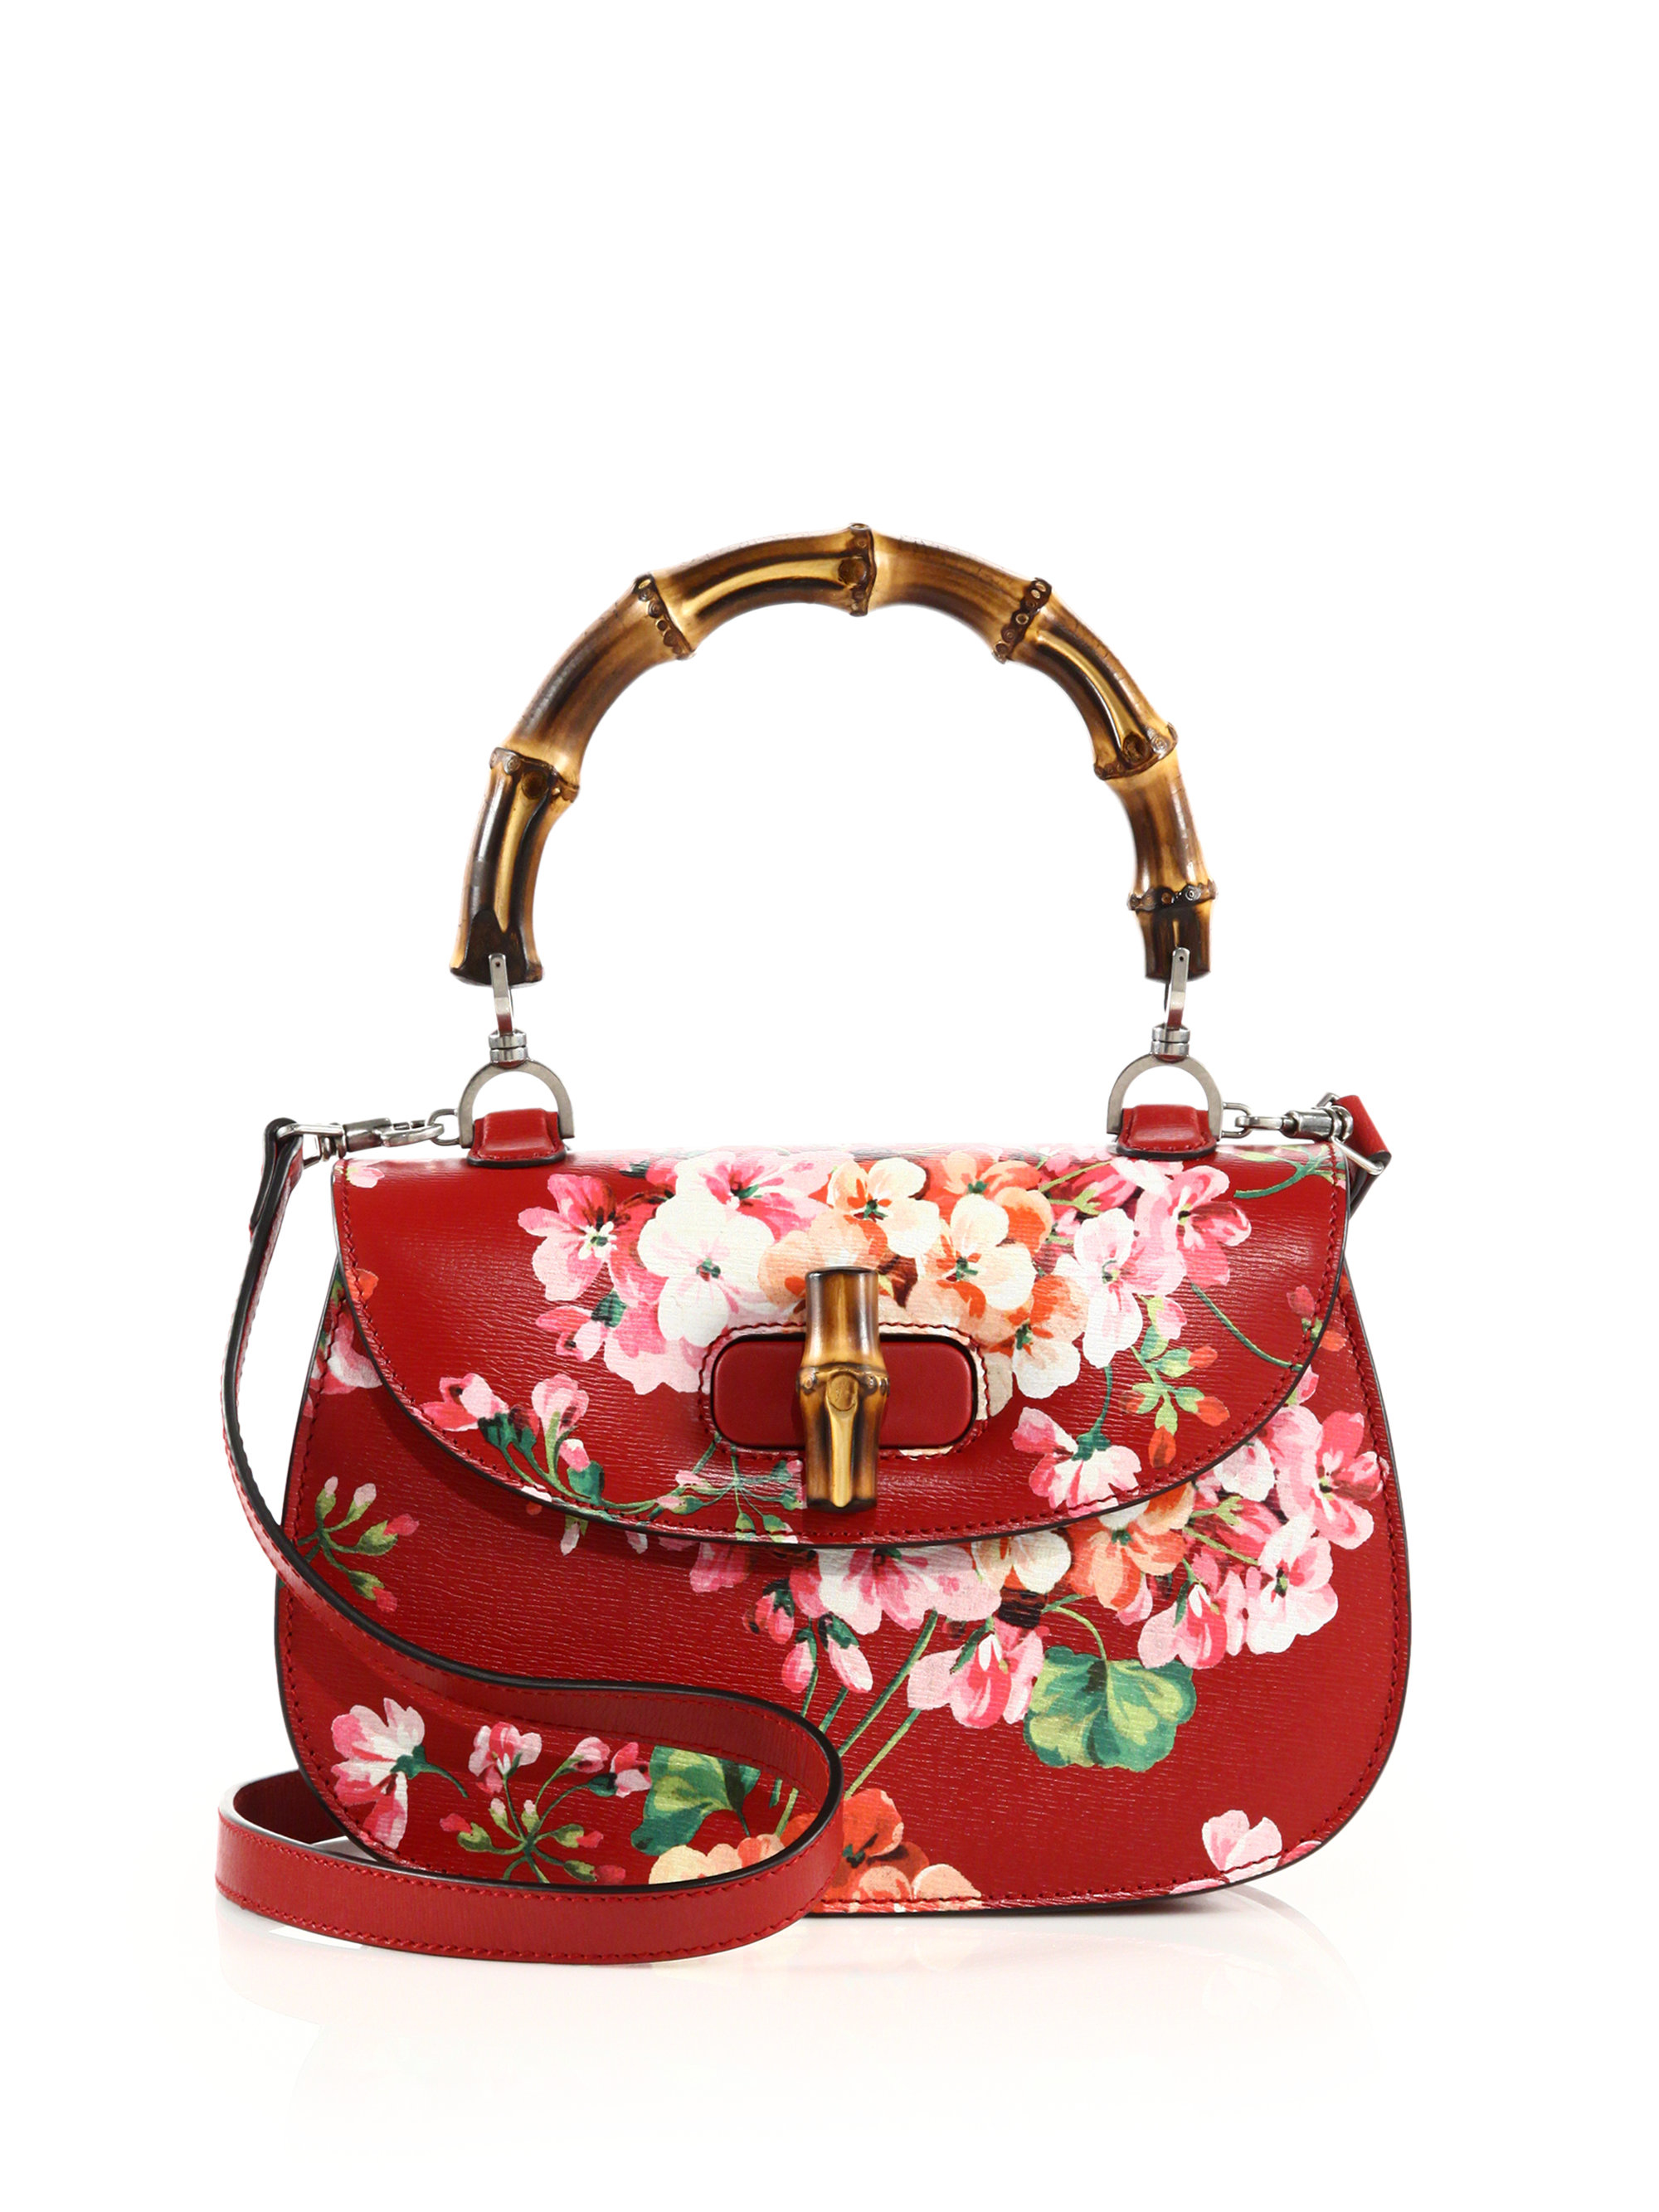 Bamboo gucci classic blooms top handle bag images